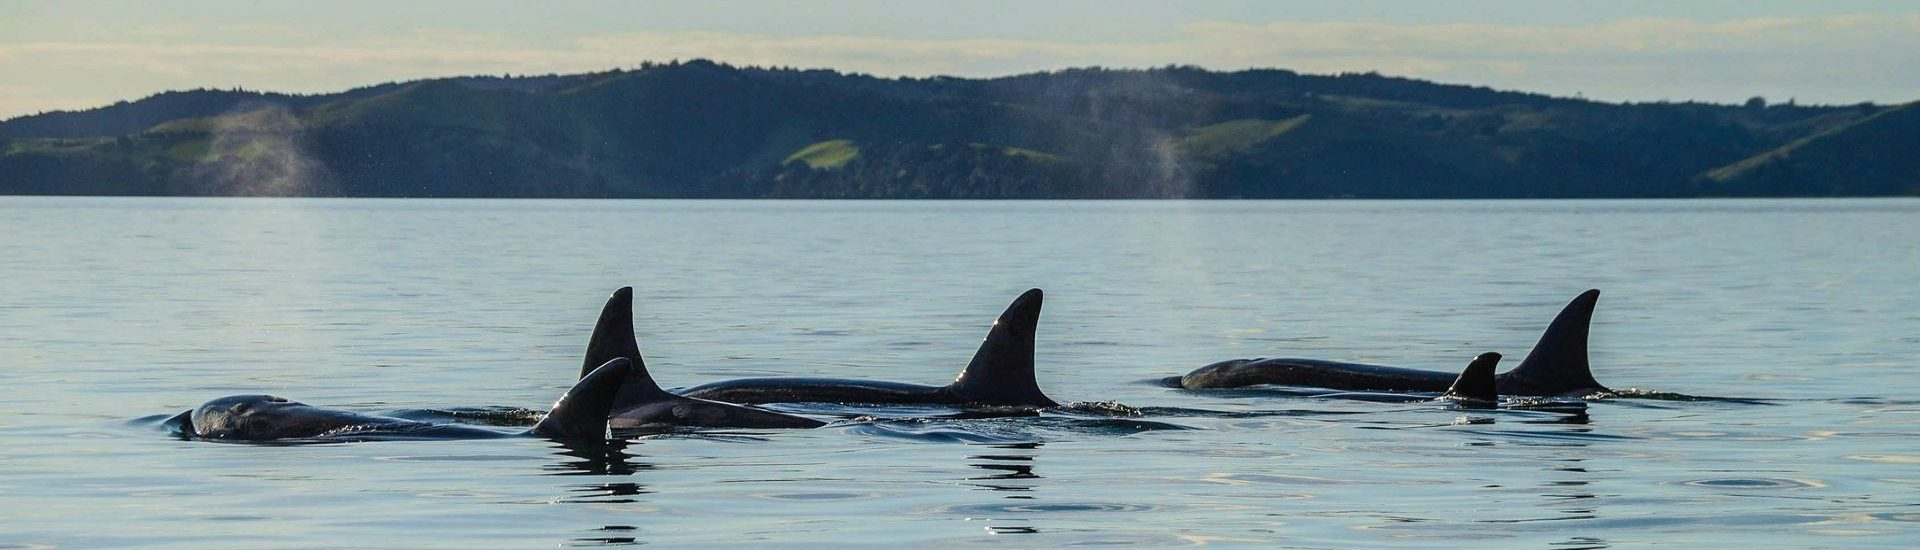 Auckland Whale & Dolphin Safari - Irish Rugby Tours, Rugby Tours To Auckland